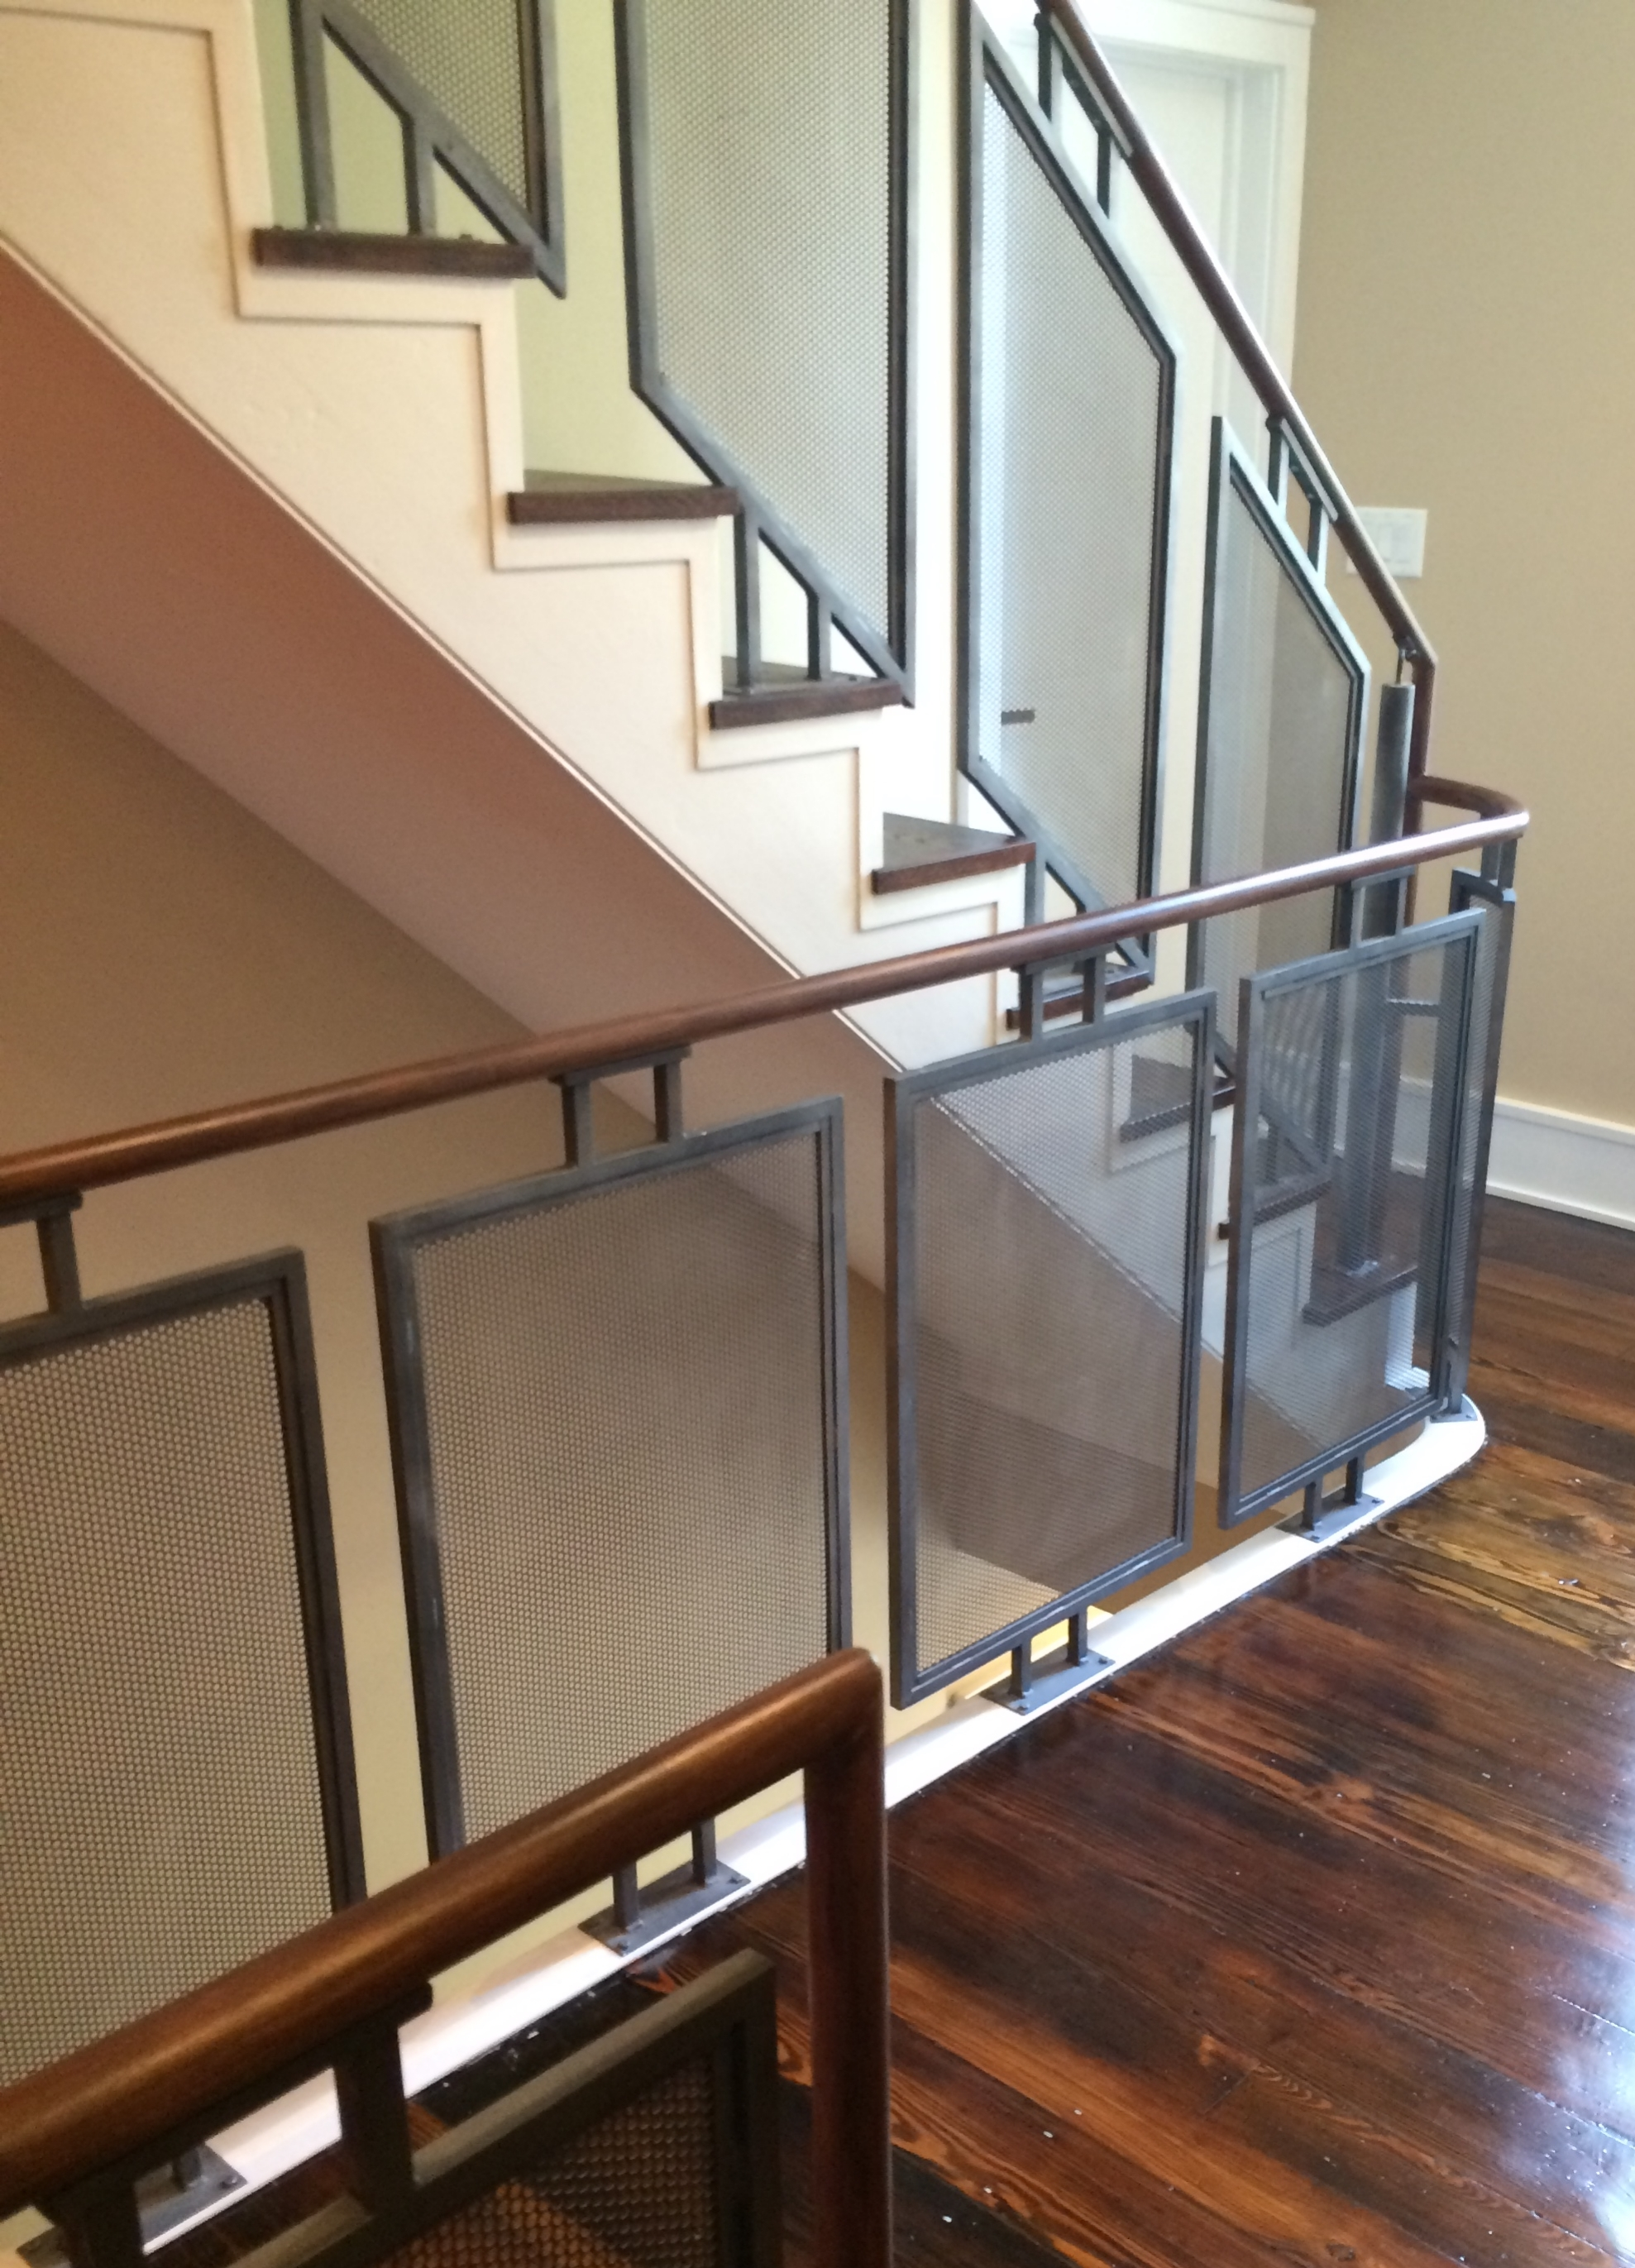 Railings — Capozzoli Stairworks | Glass Railing With Wood Handrail | Modern | Interior | Panel | Metal | Residential